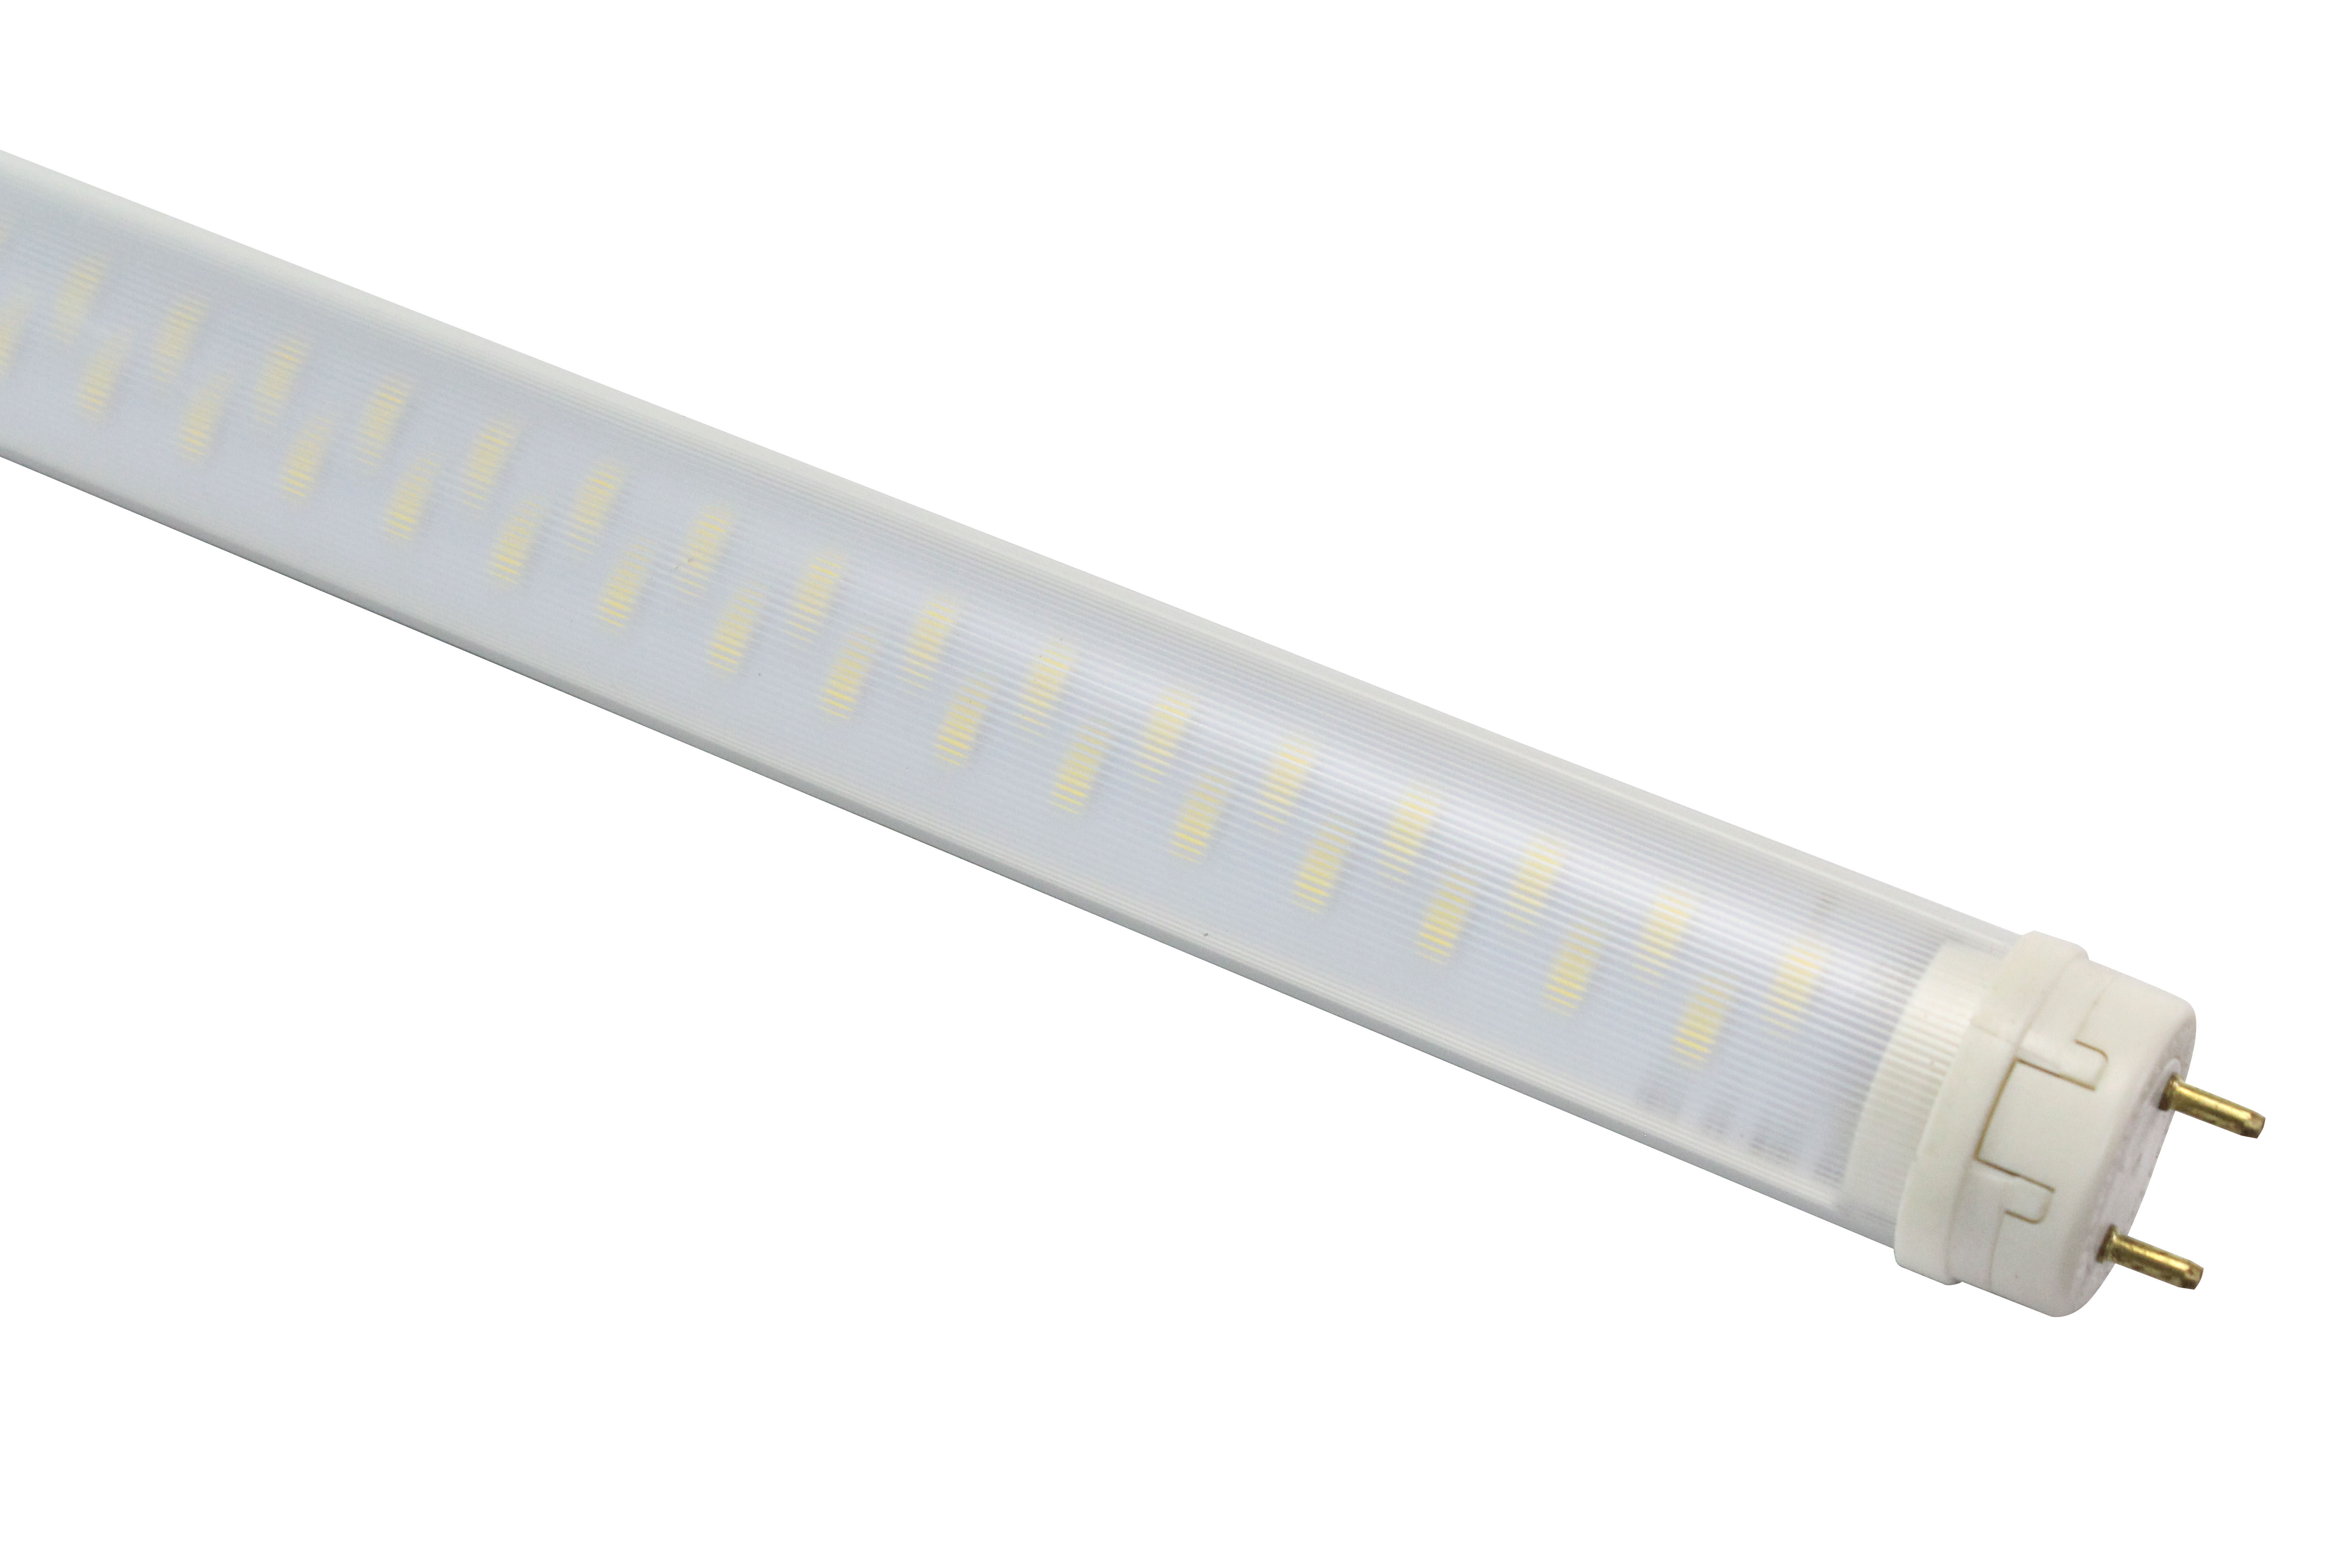 Larson Electronics Releases A Four Foot Led Light Bulb To